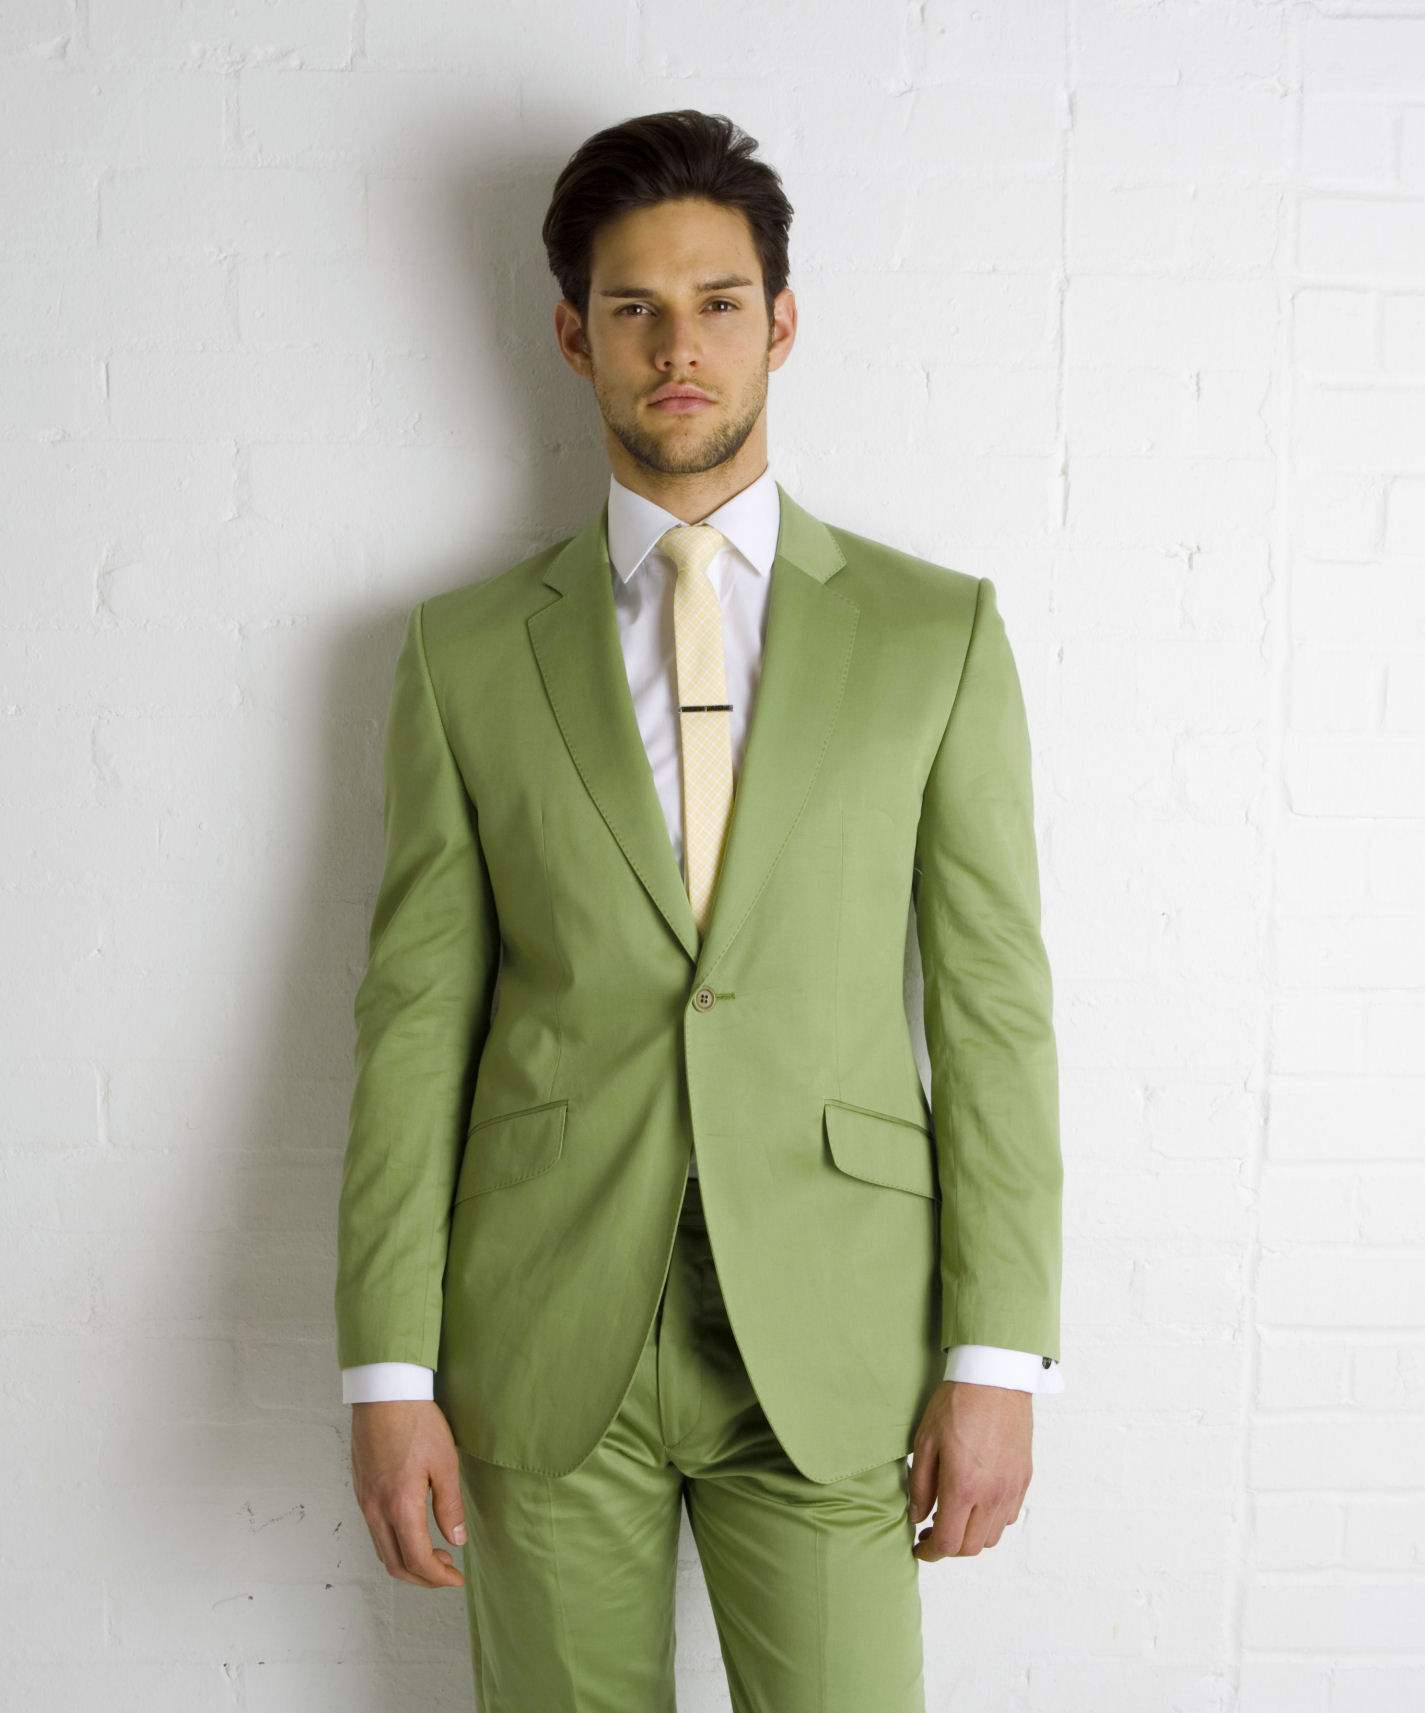 The 5Ws of hiring wedding suits